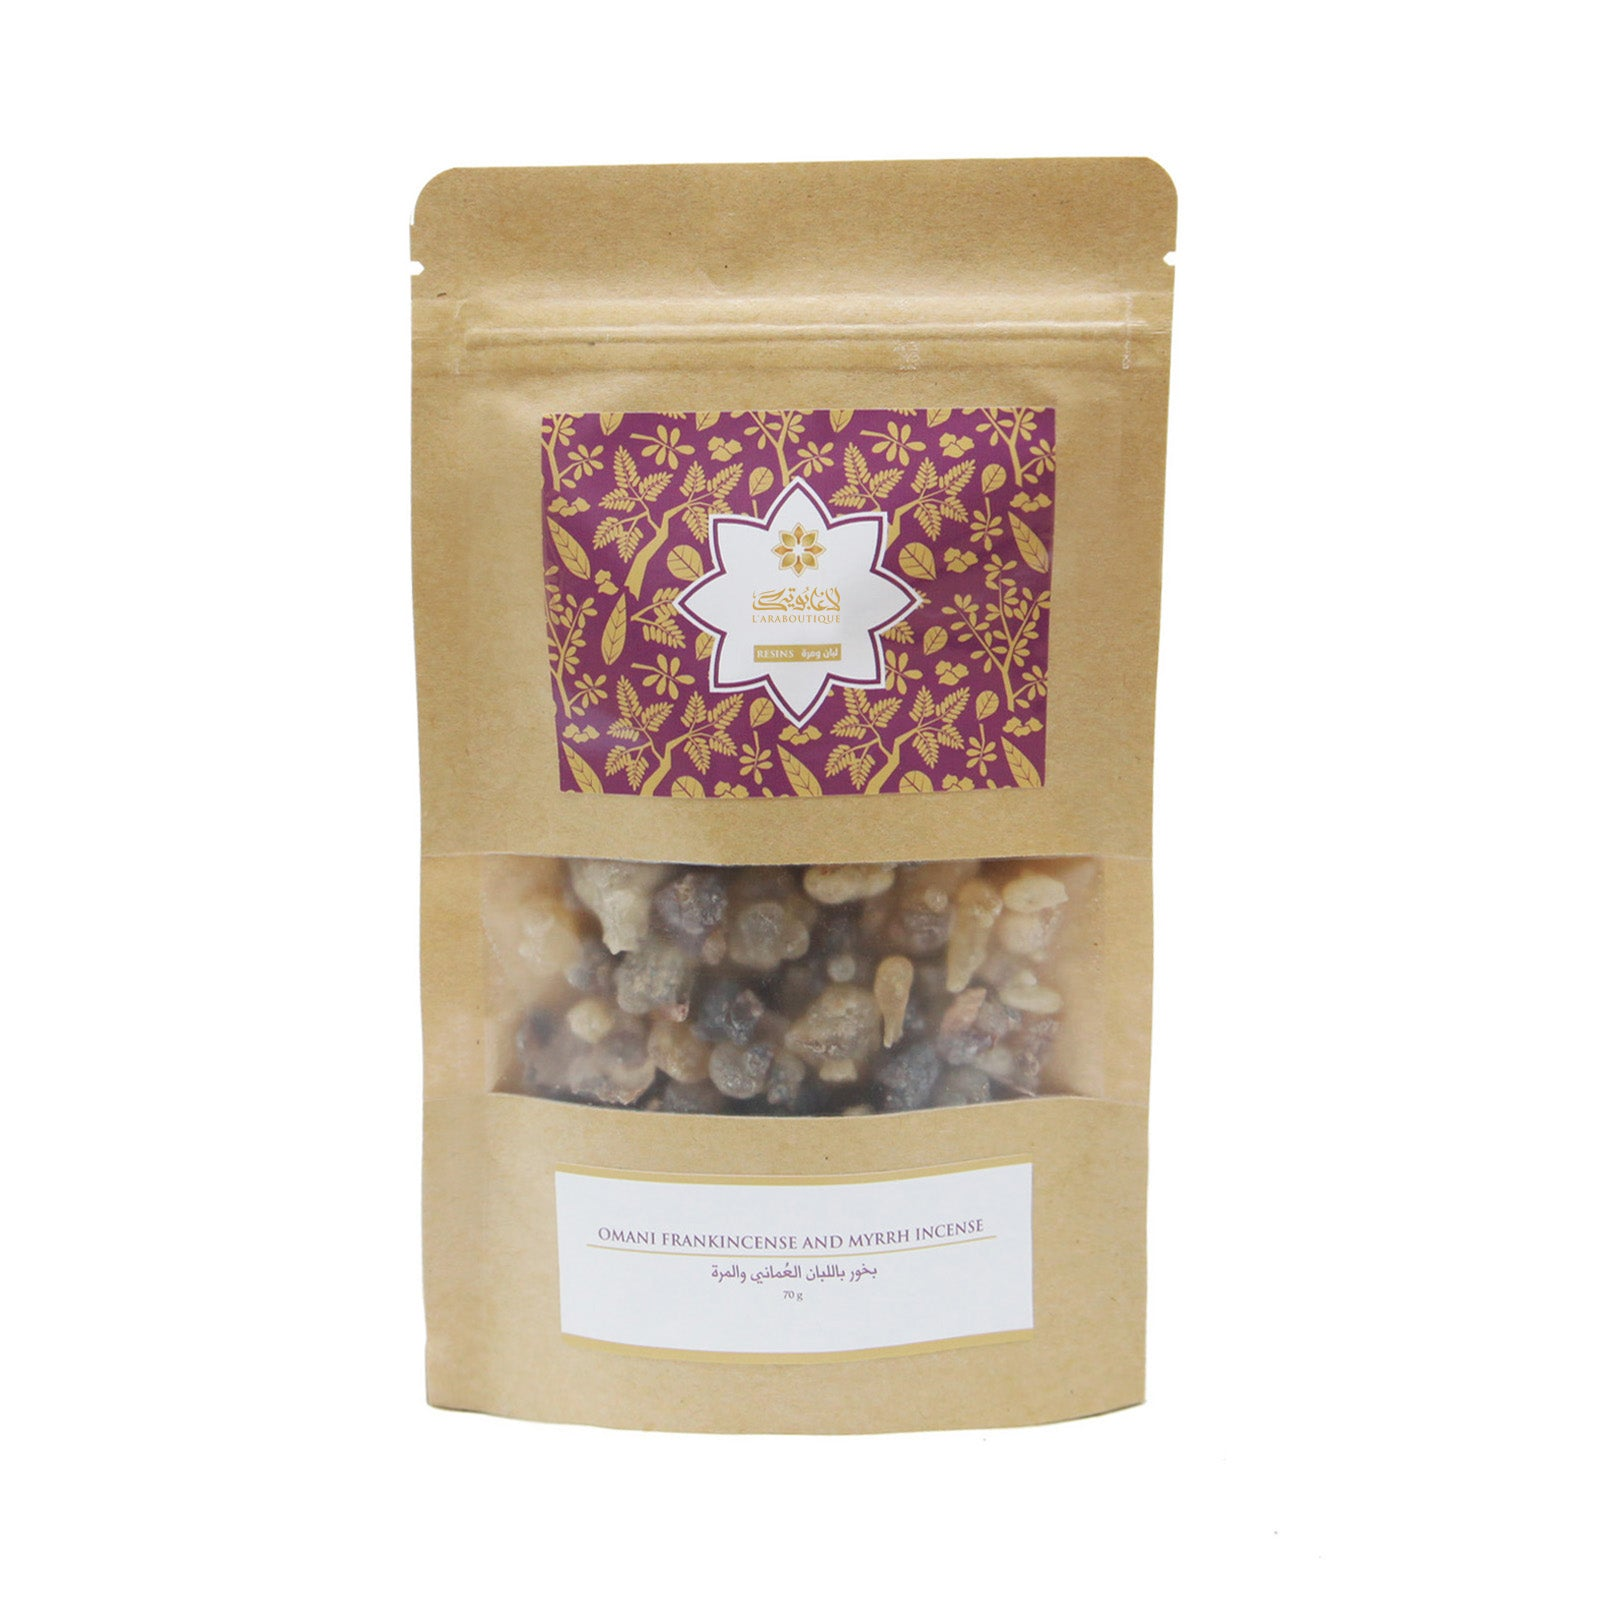 Omani Frankincense and Myrrh Incense - 70g